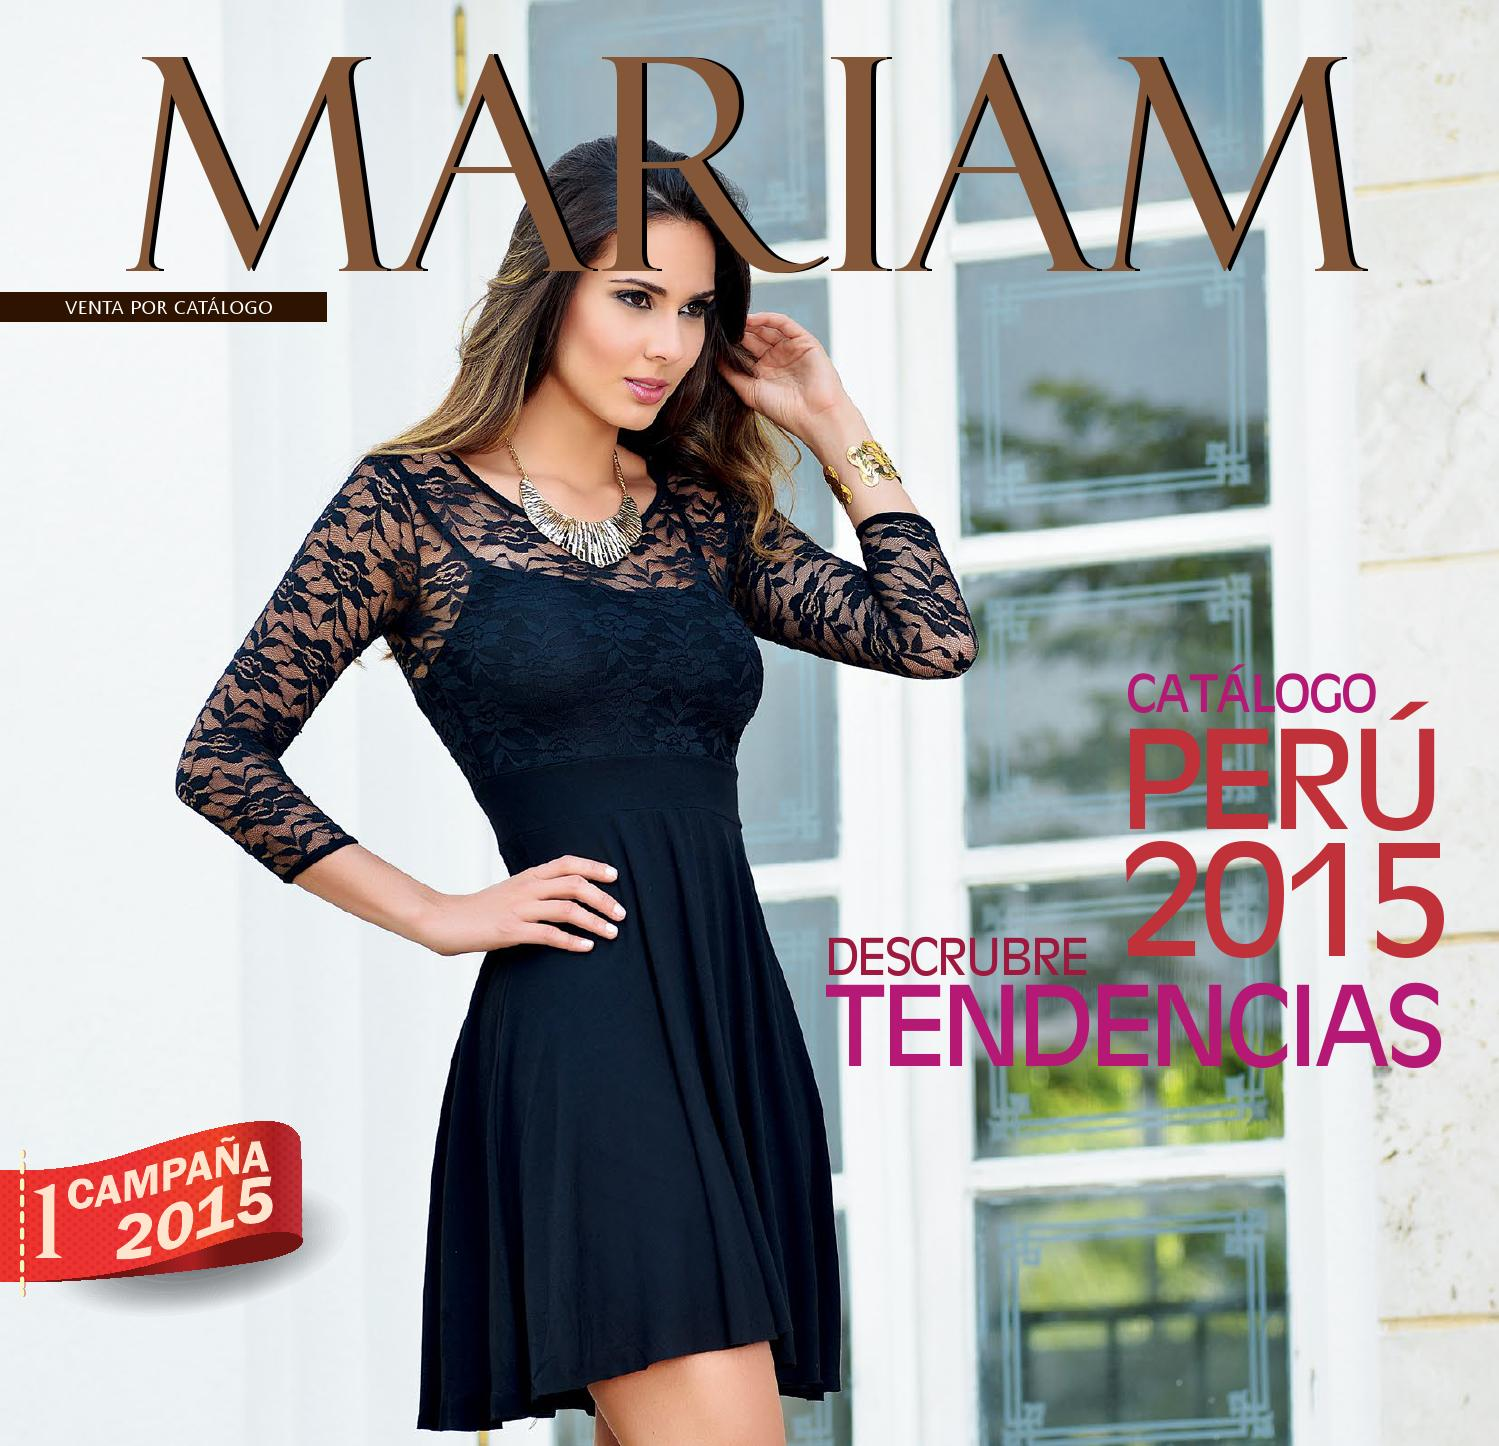 d6b3ac9b8be3 Catalogo Mariam - Campaña 01/15 by Mariam Perú - issuu